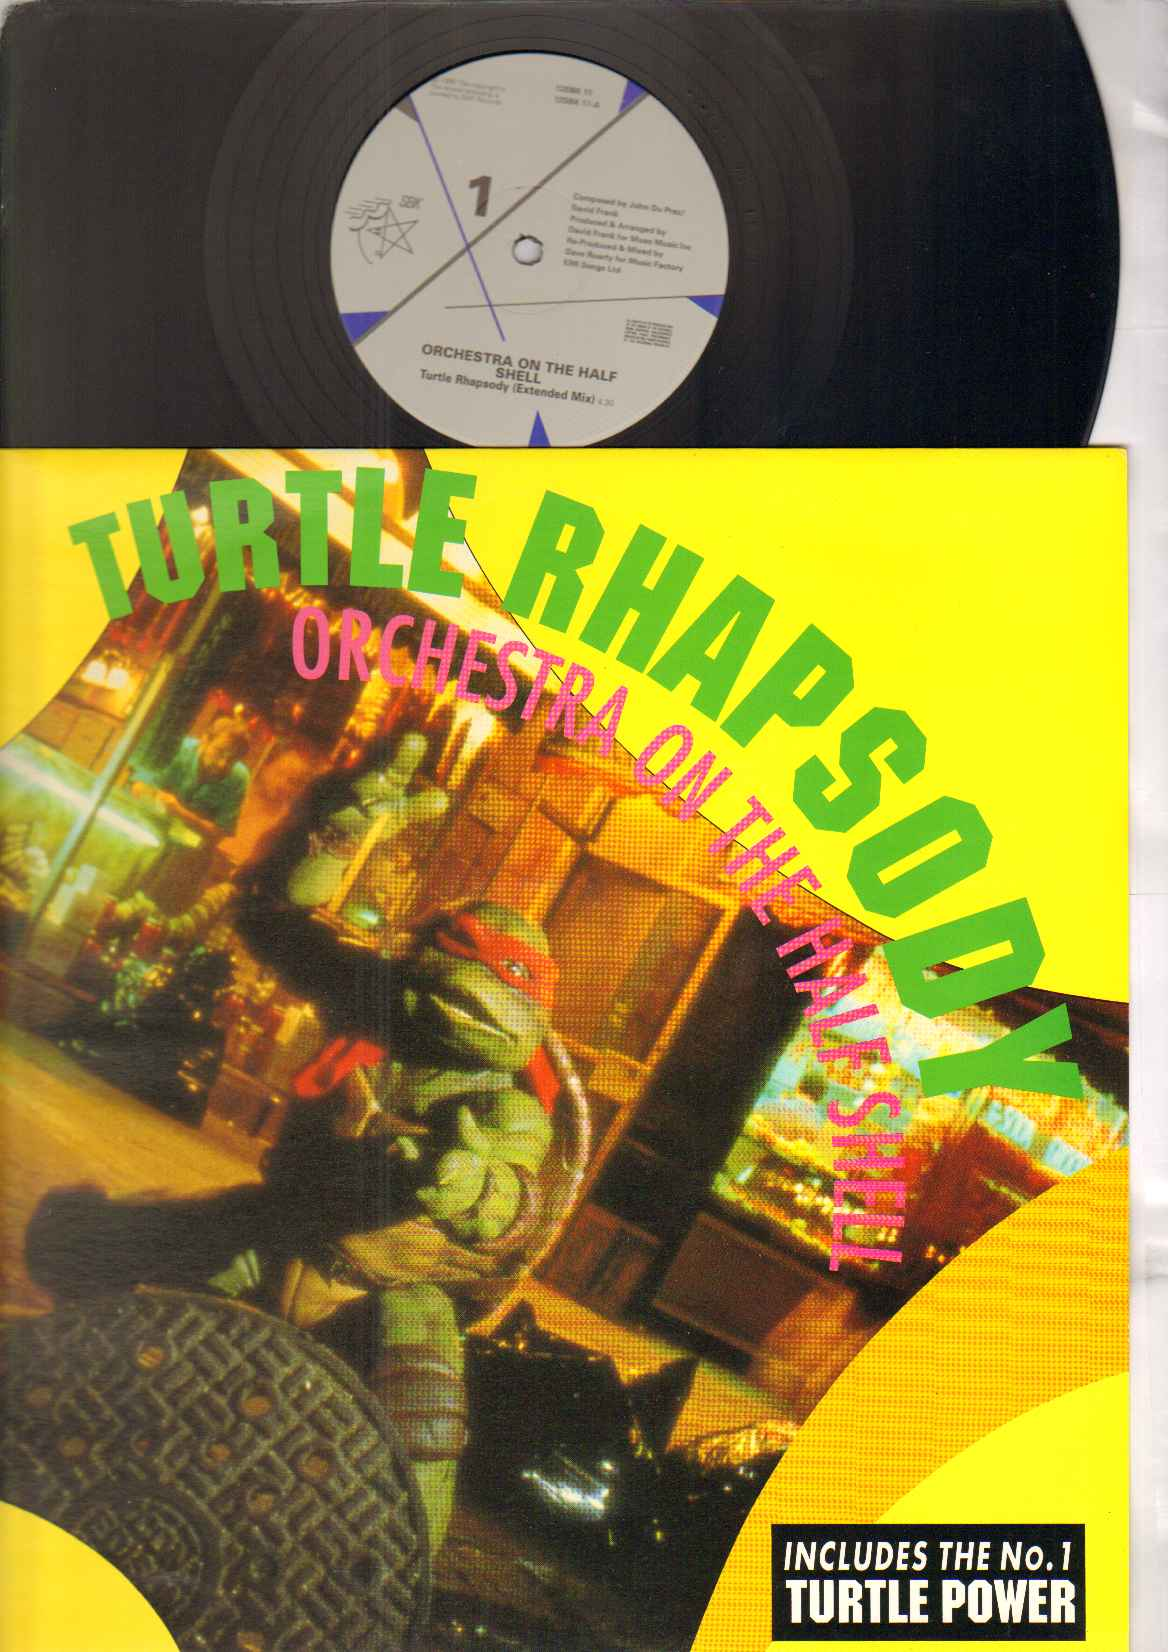 ORCHESTRA ON THE HALF SHELL - TURTLE RHAPSODY - 12 inch 45 rpm